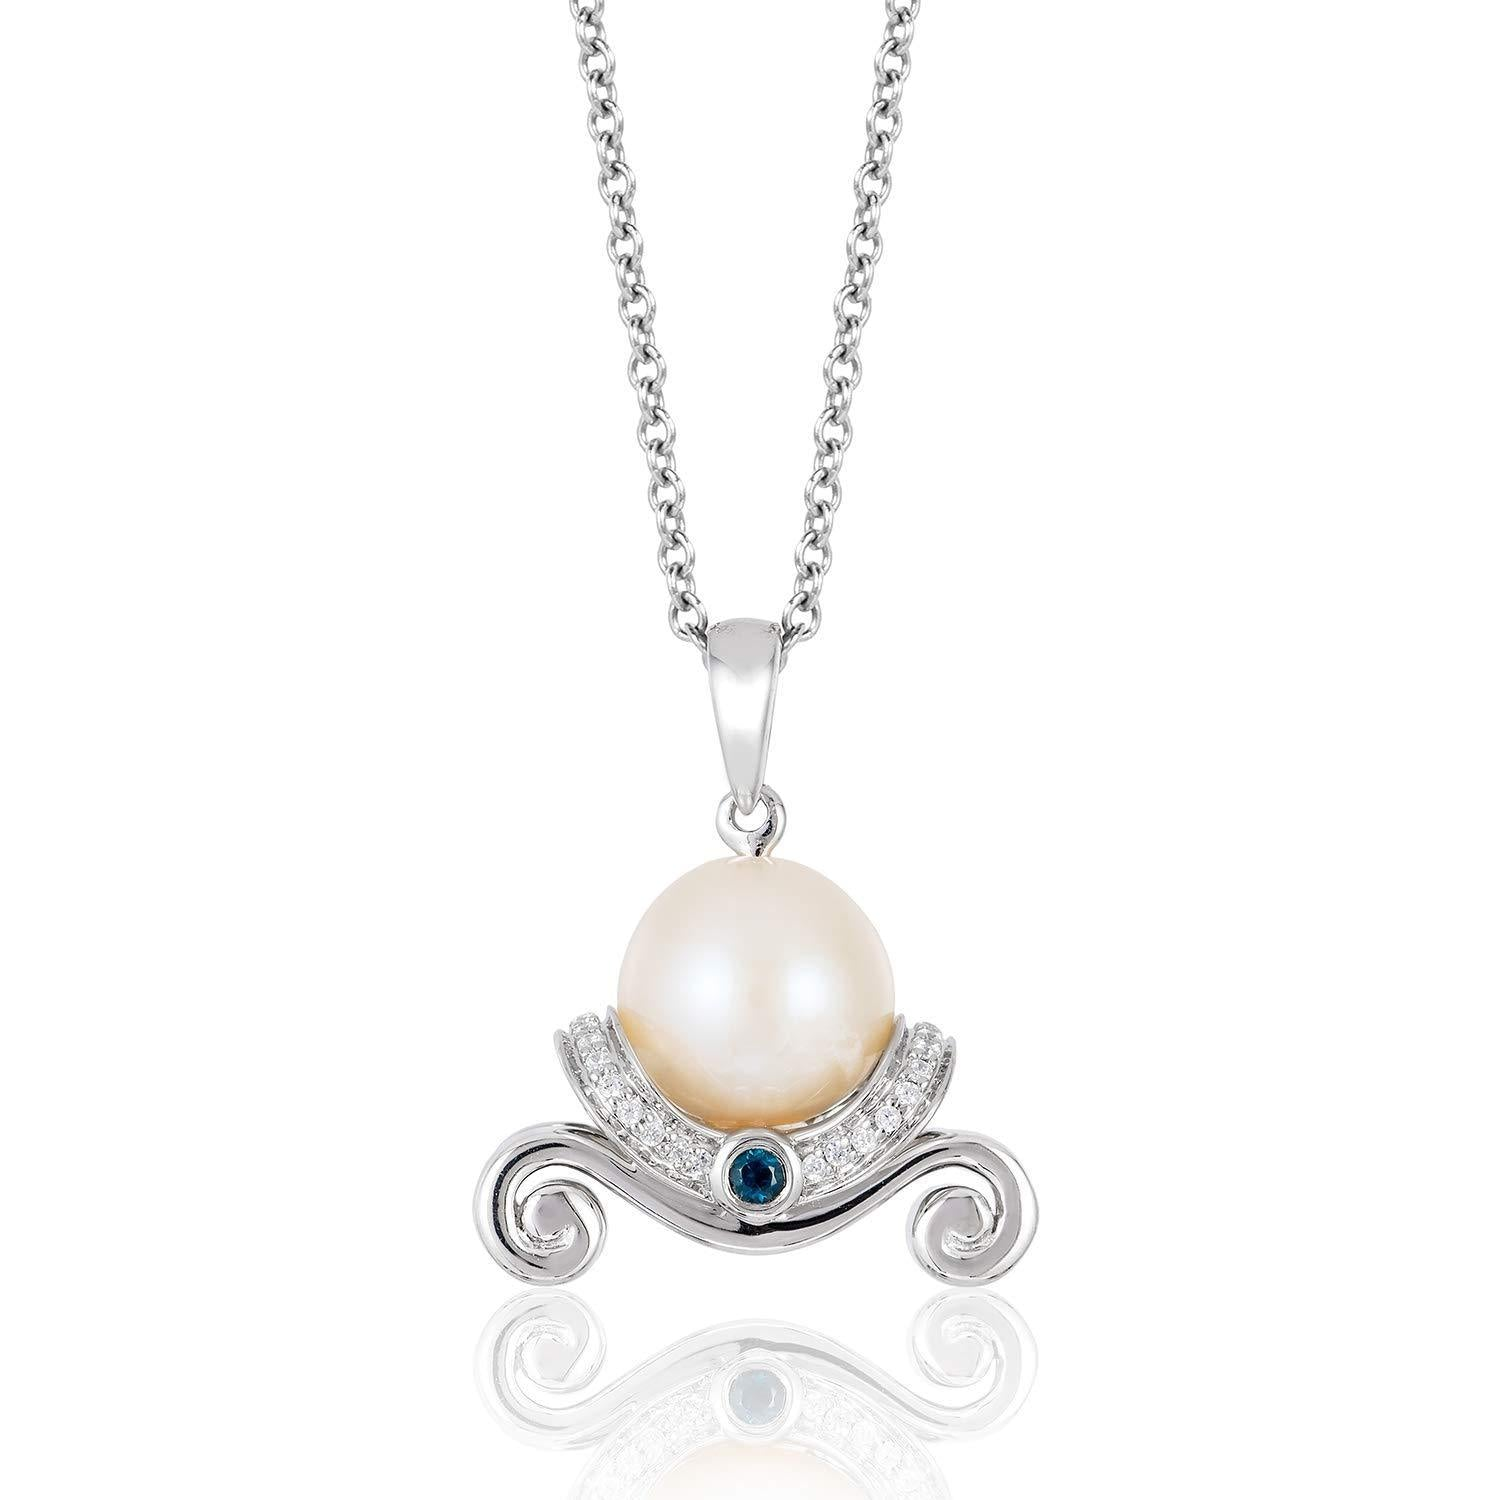 enchanted_disney-cinderella_pearl_london_blue_topaz_pendant-sterling_silver_0.10CTTW_1